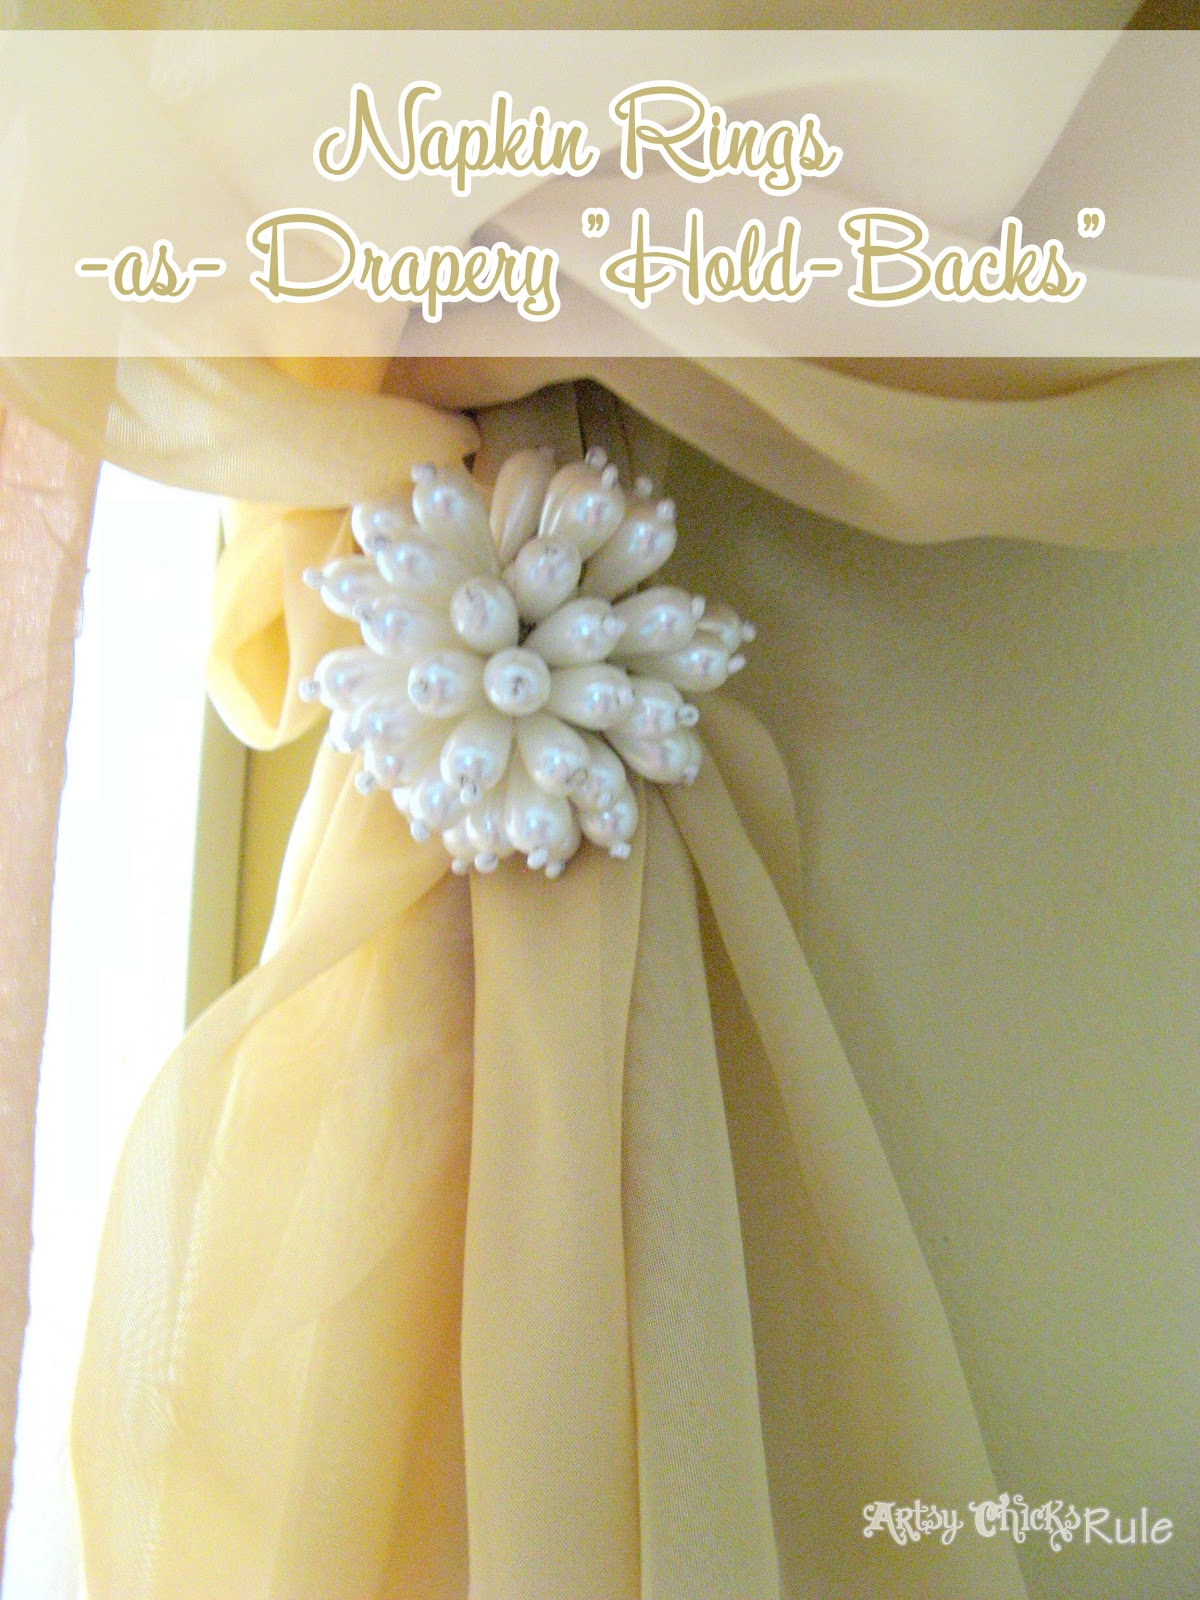 Cool Use For Napkin Rings As Drapery Quot Hold Backs